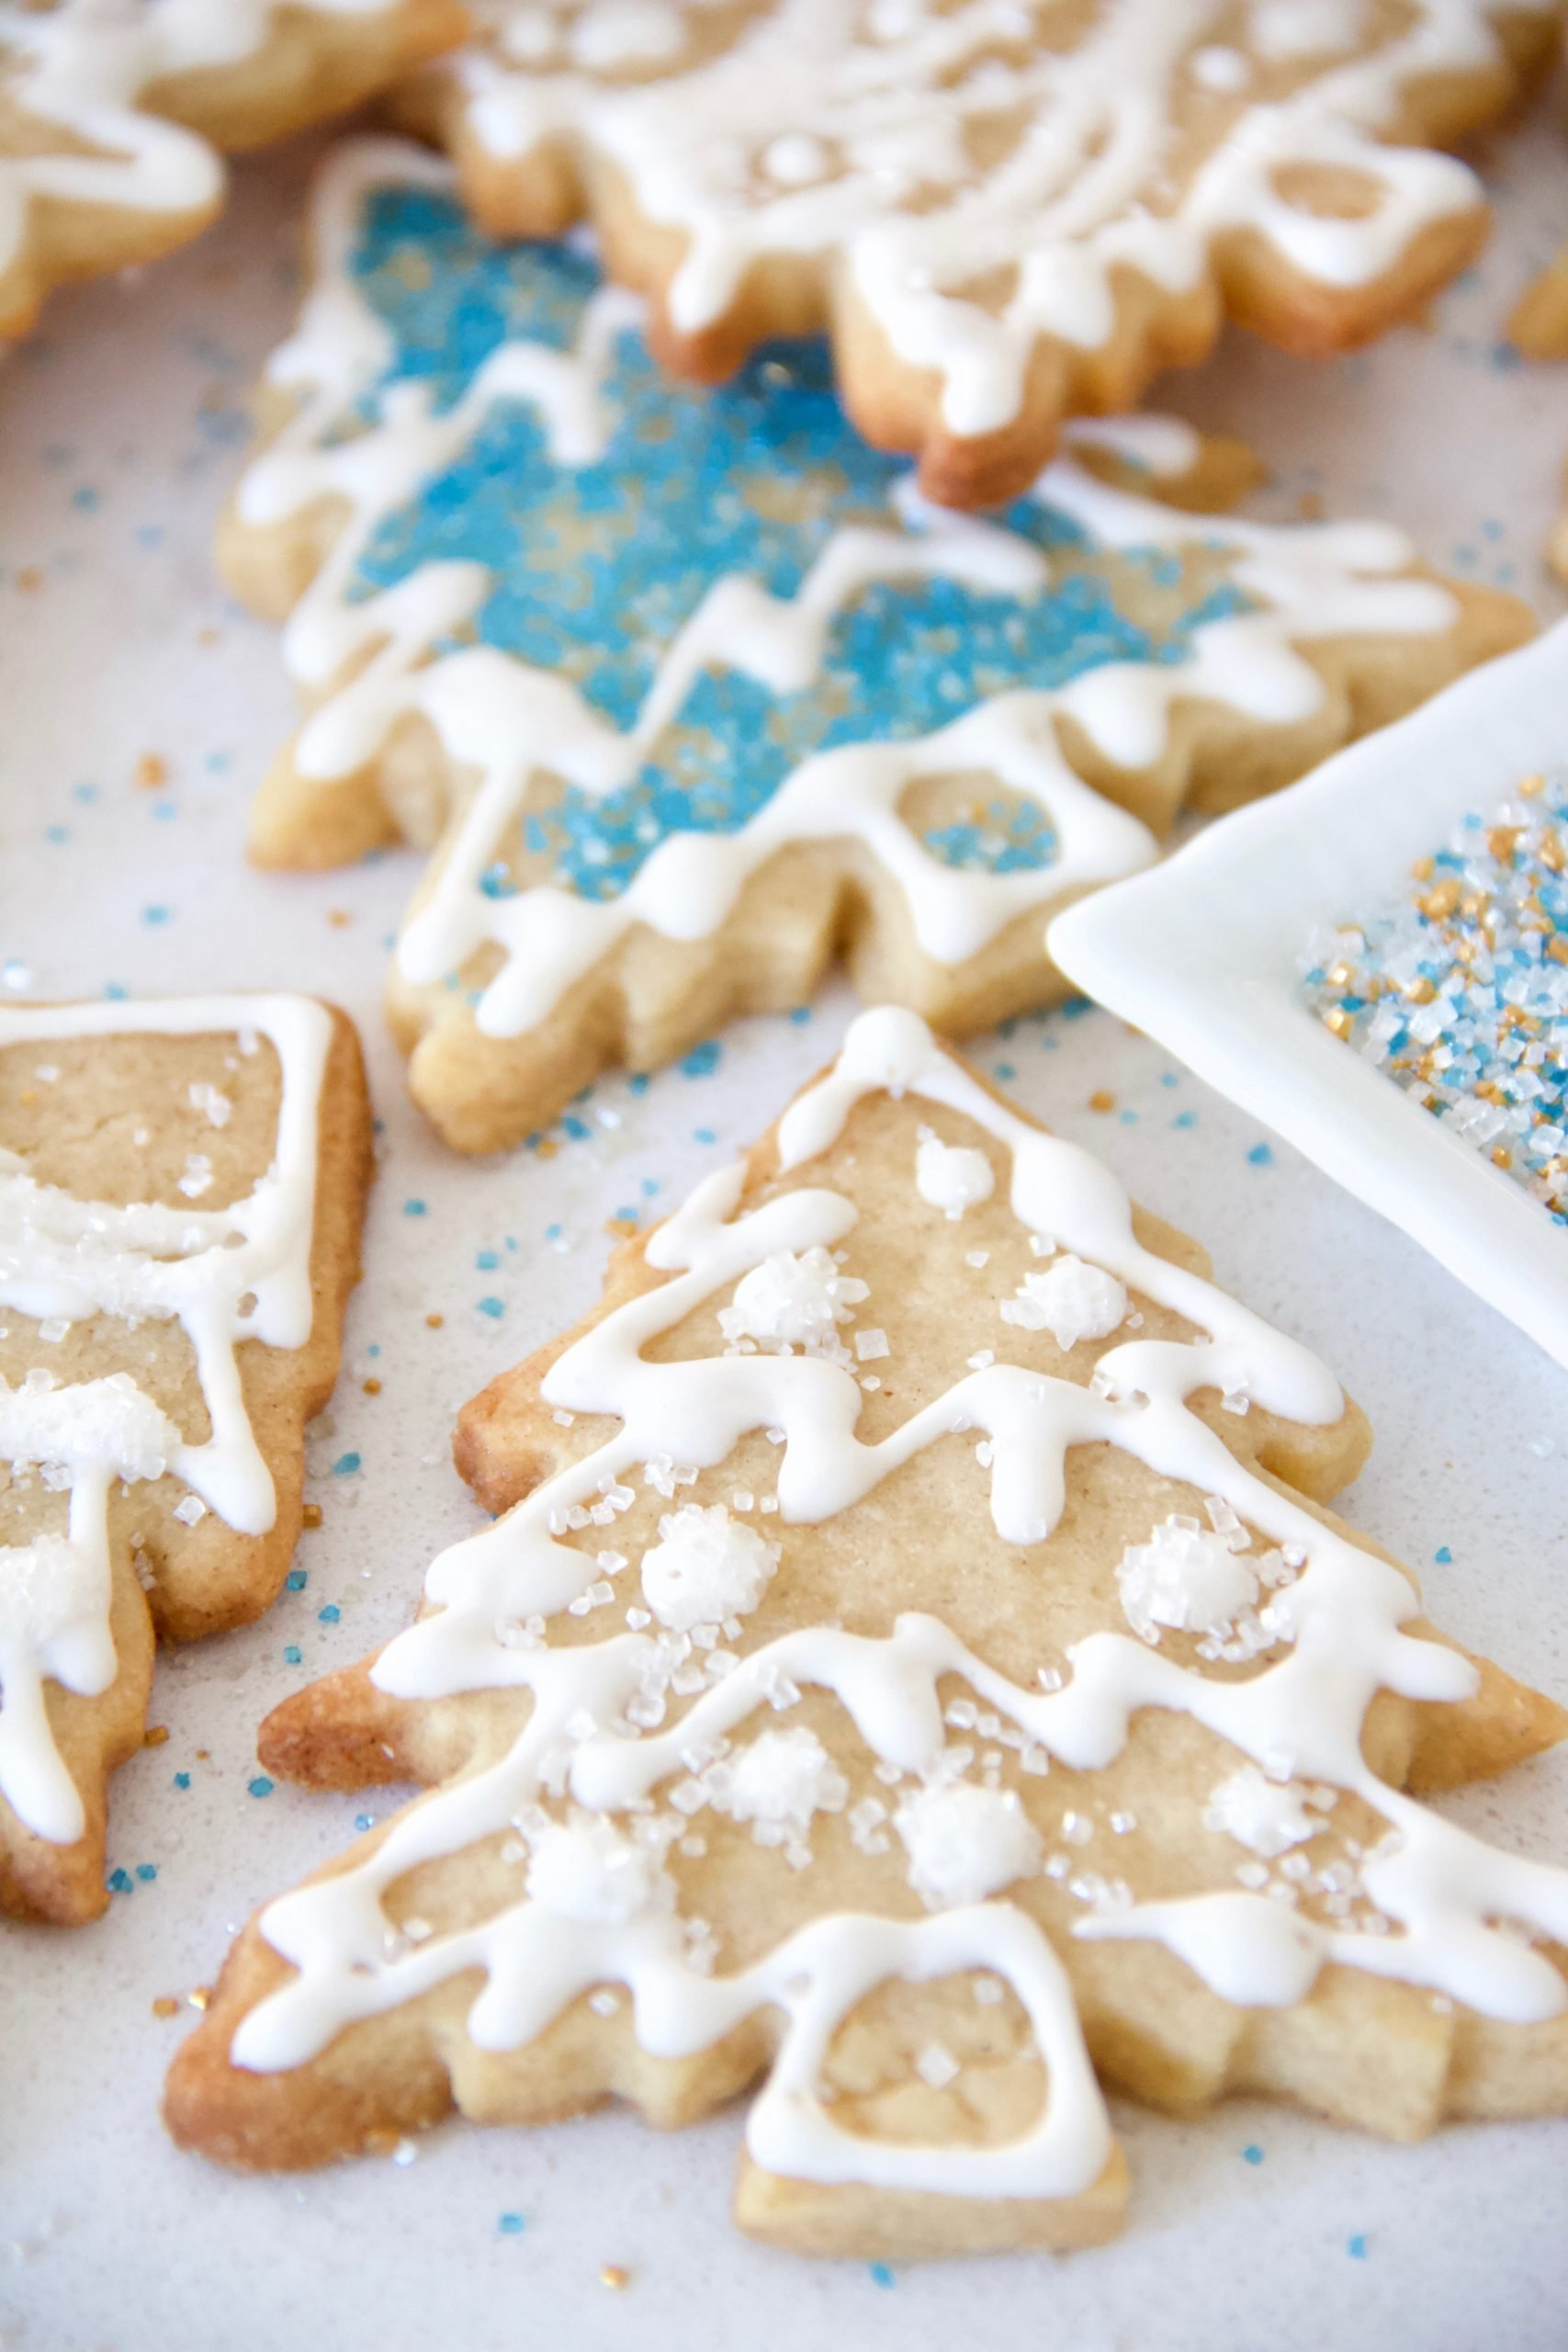 No-Chill Cinnamon-Sugar Cut-Out Cookies